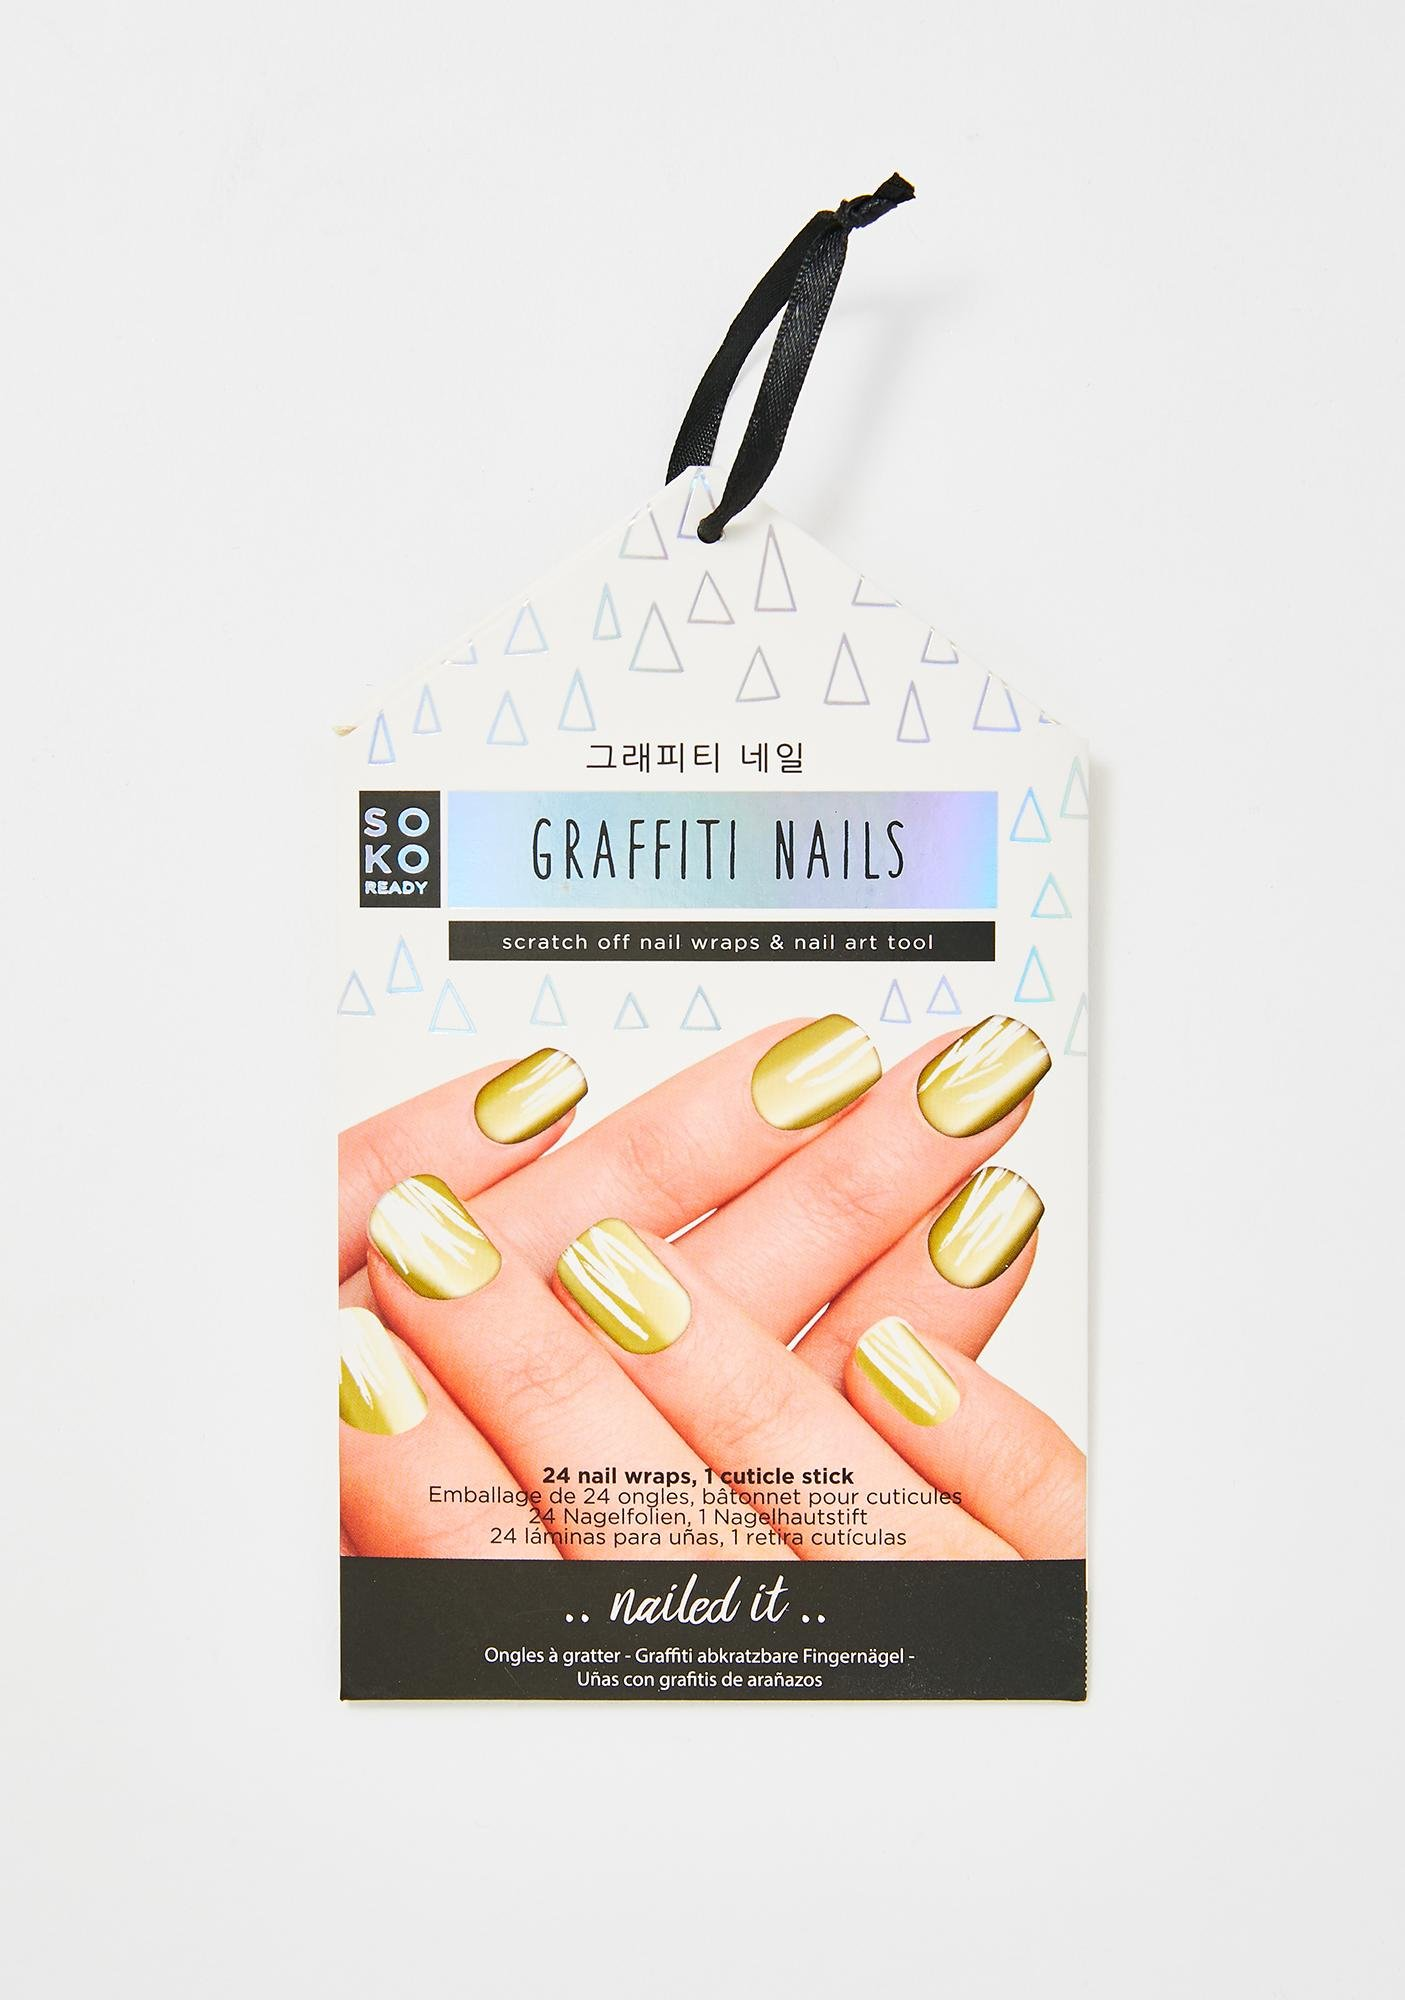 Soko Ready Graffiti Nails